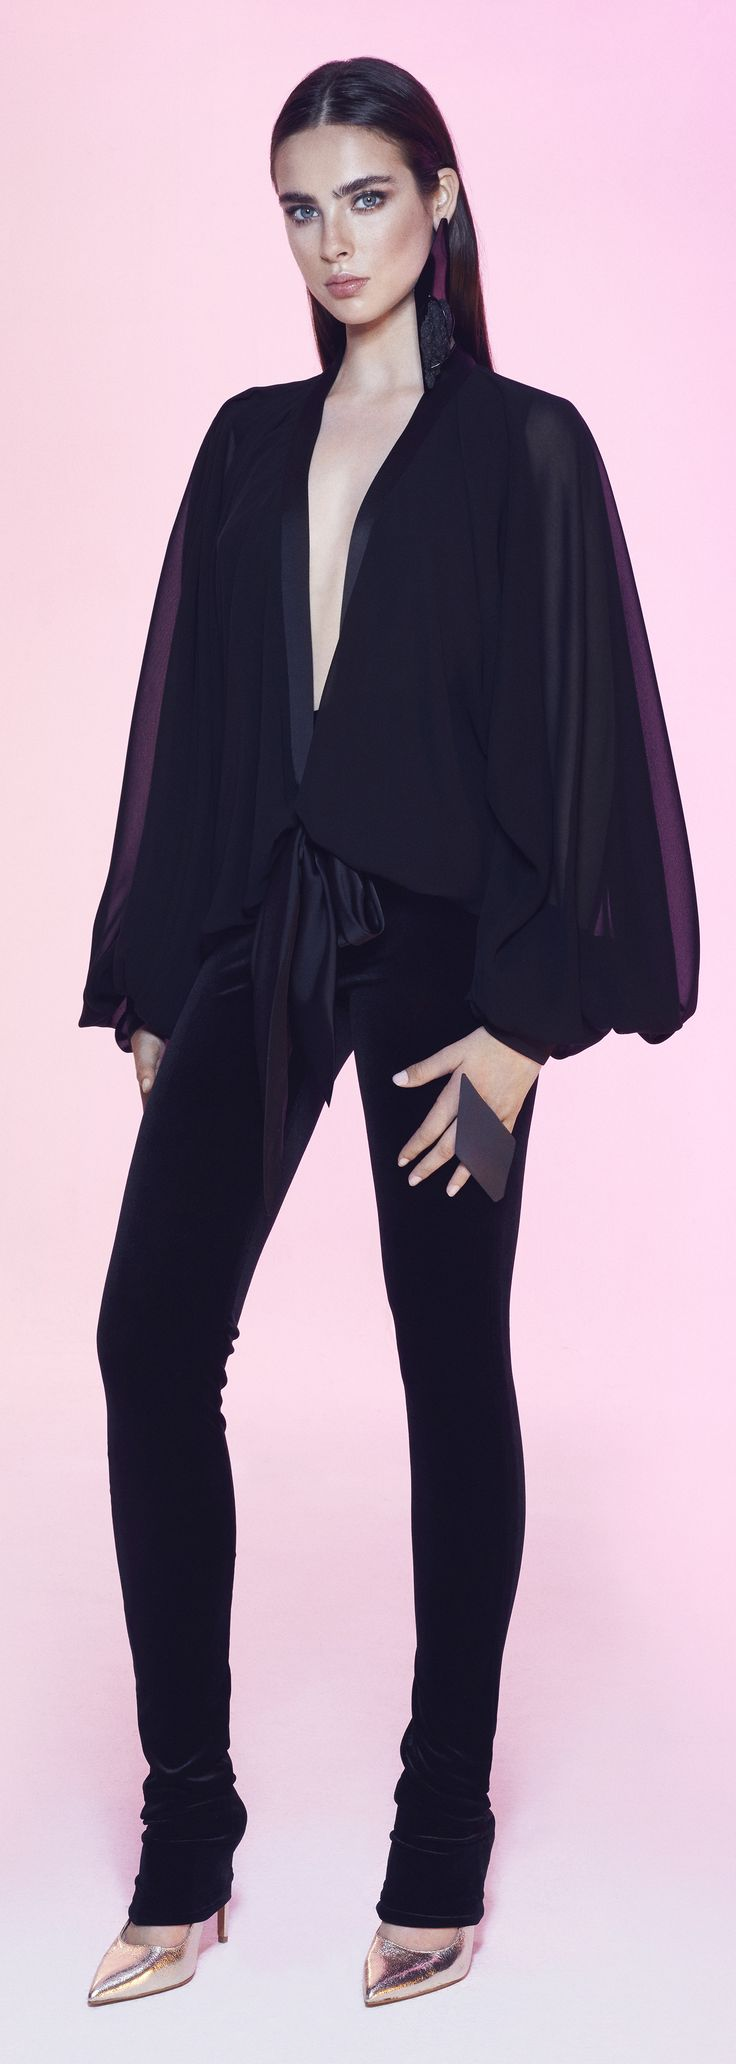 Onyx Top: Black chiffon-satin top. Low-closing blouse with longer tapes to tie up the shirt above the waist. Long bomber and flowy sleeves with cuffed wrists. #RTW #top #black